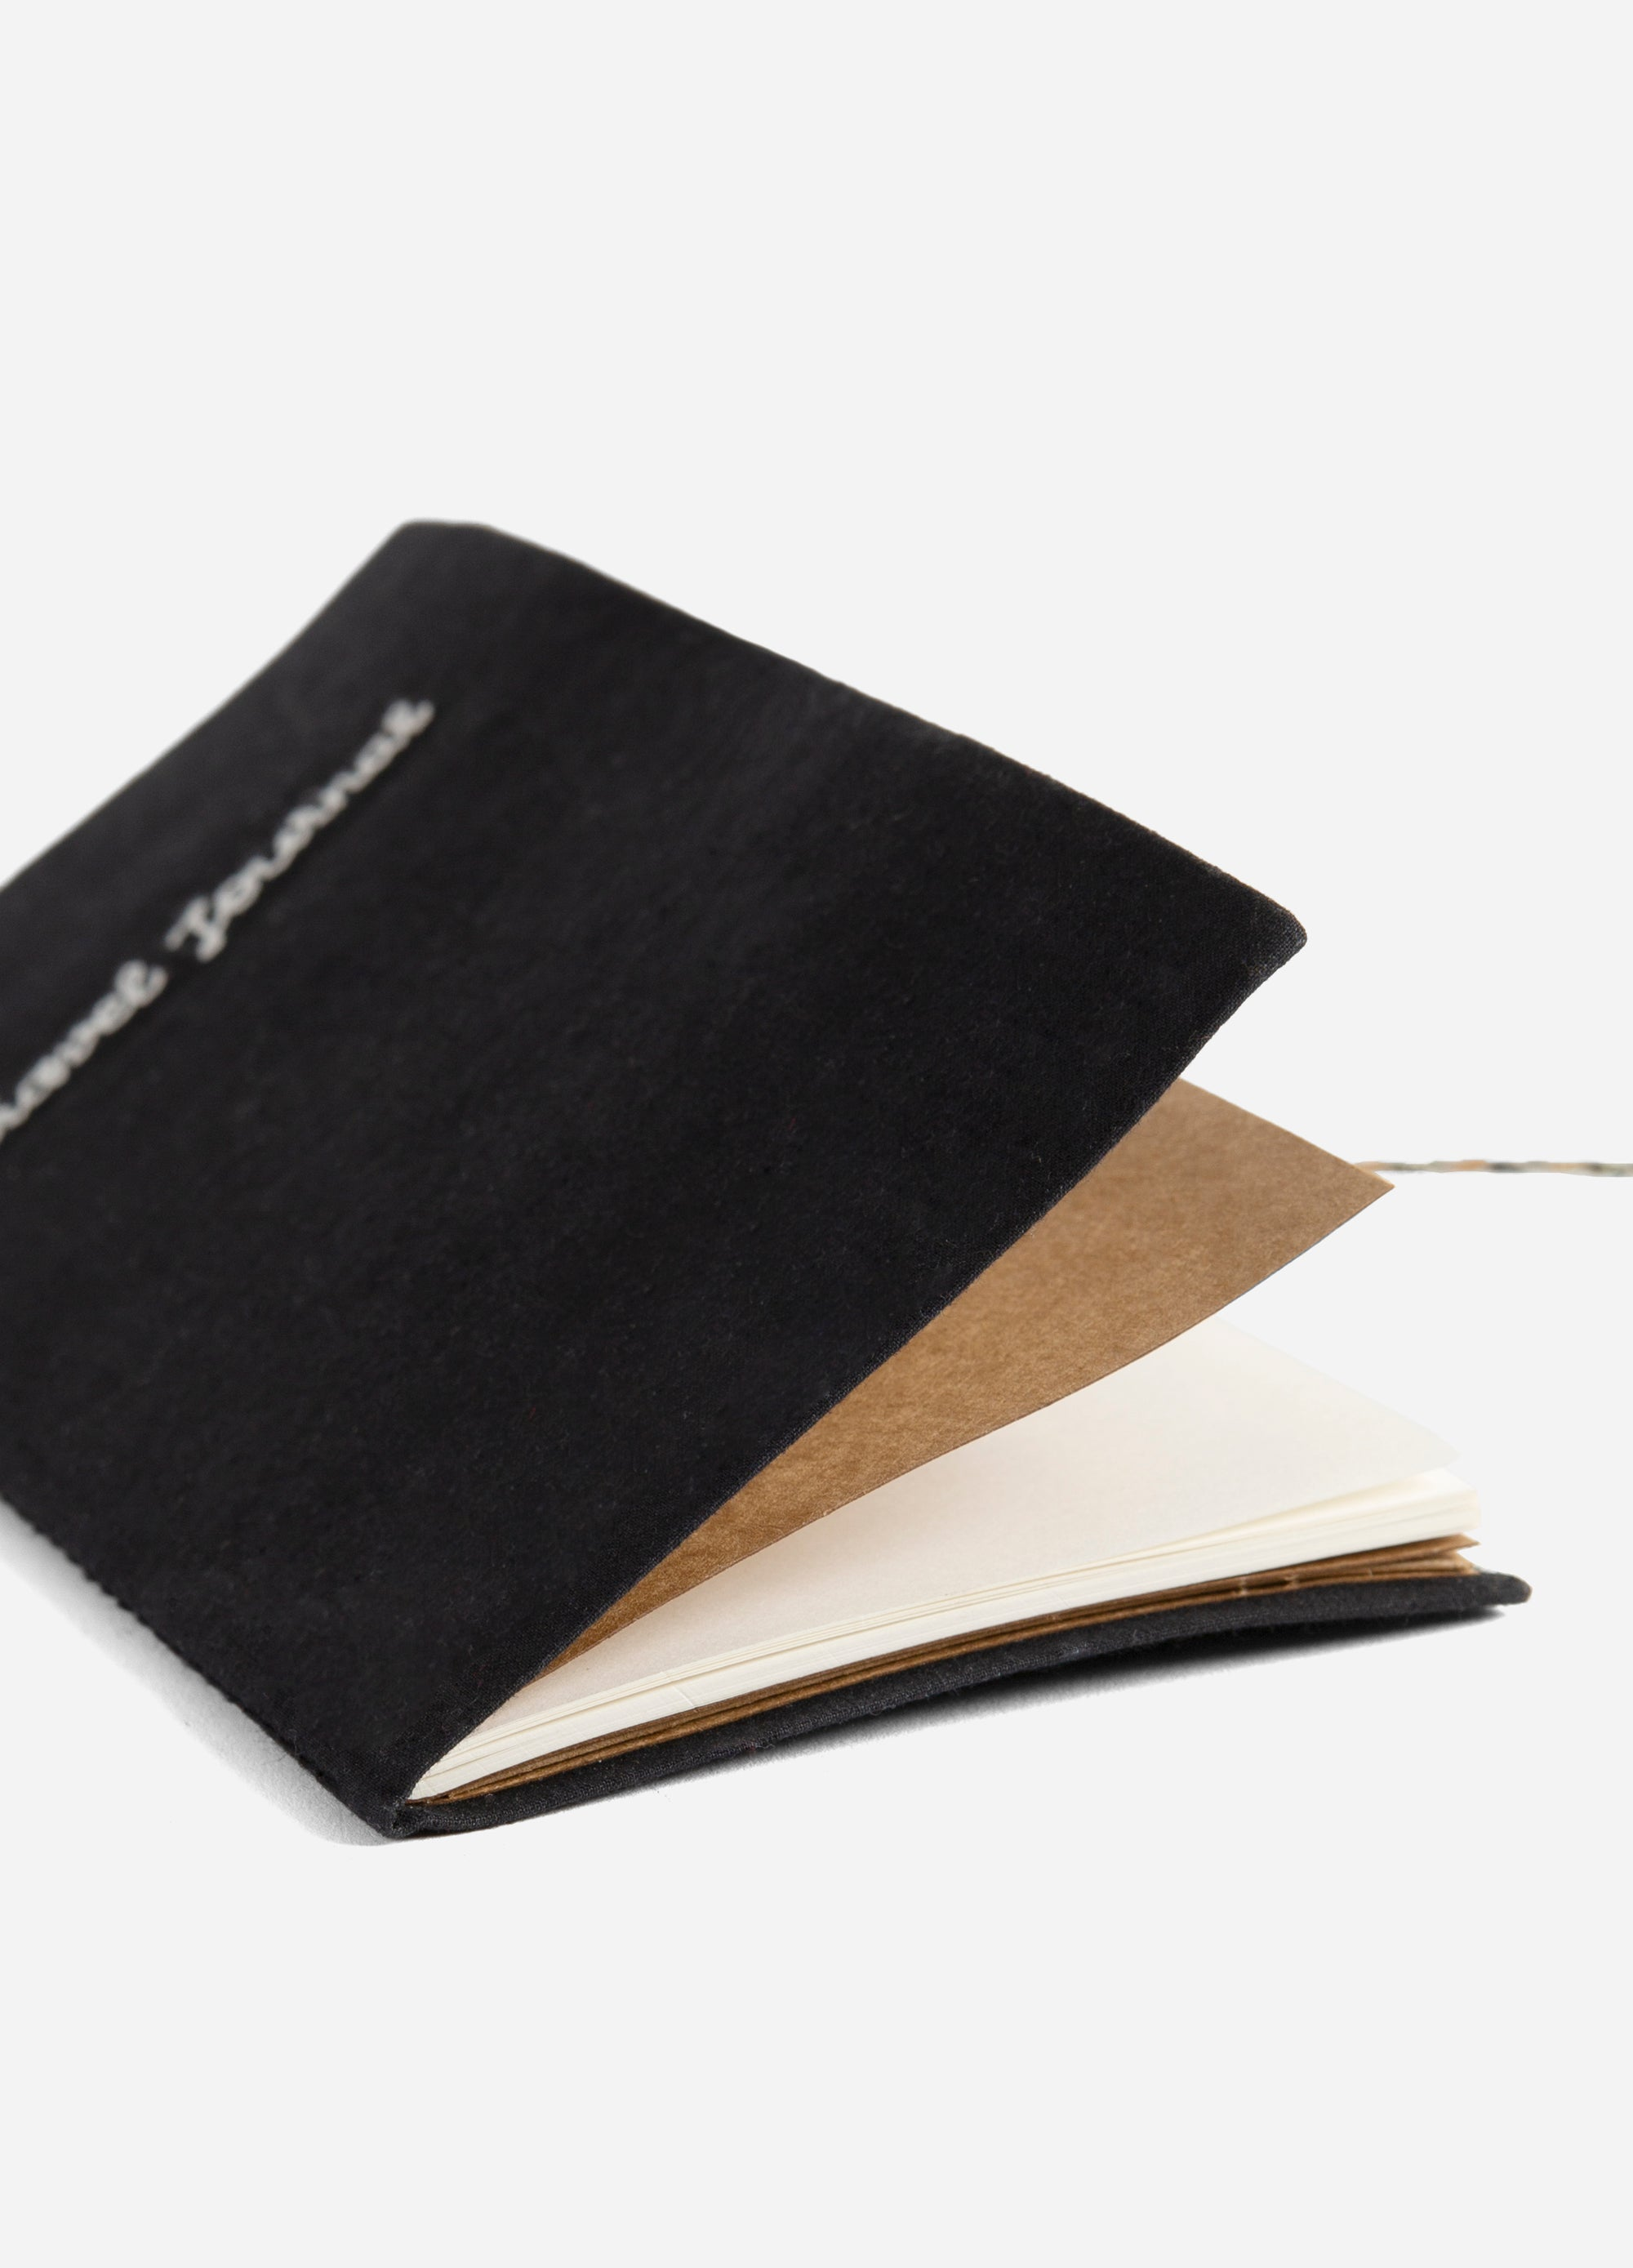 Traveler - Embroidered Cotton Travel Journal - Black